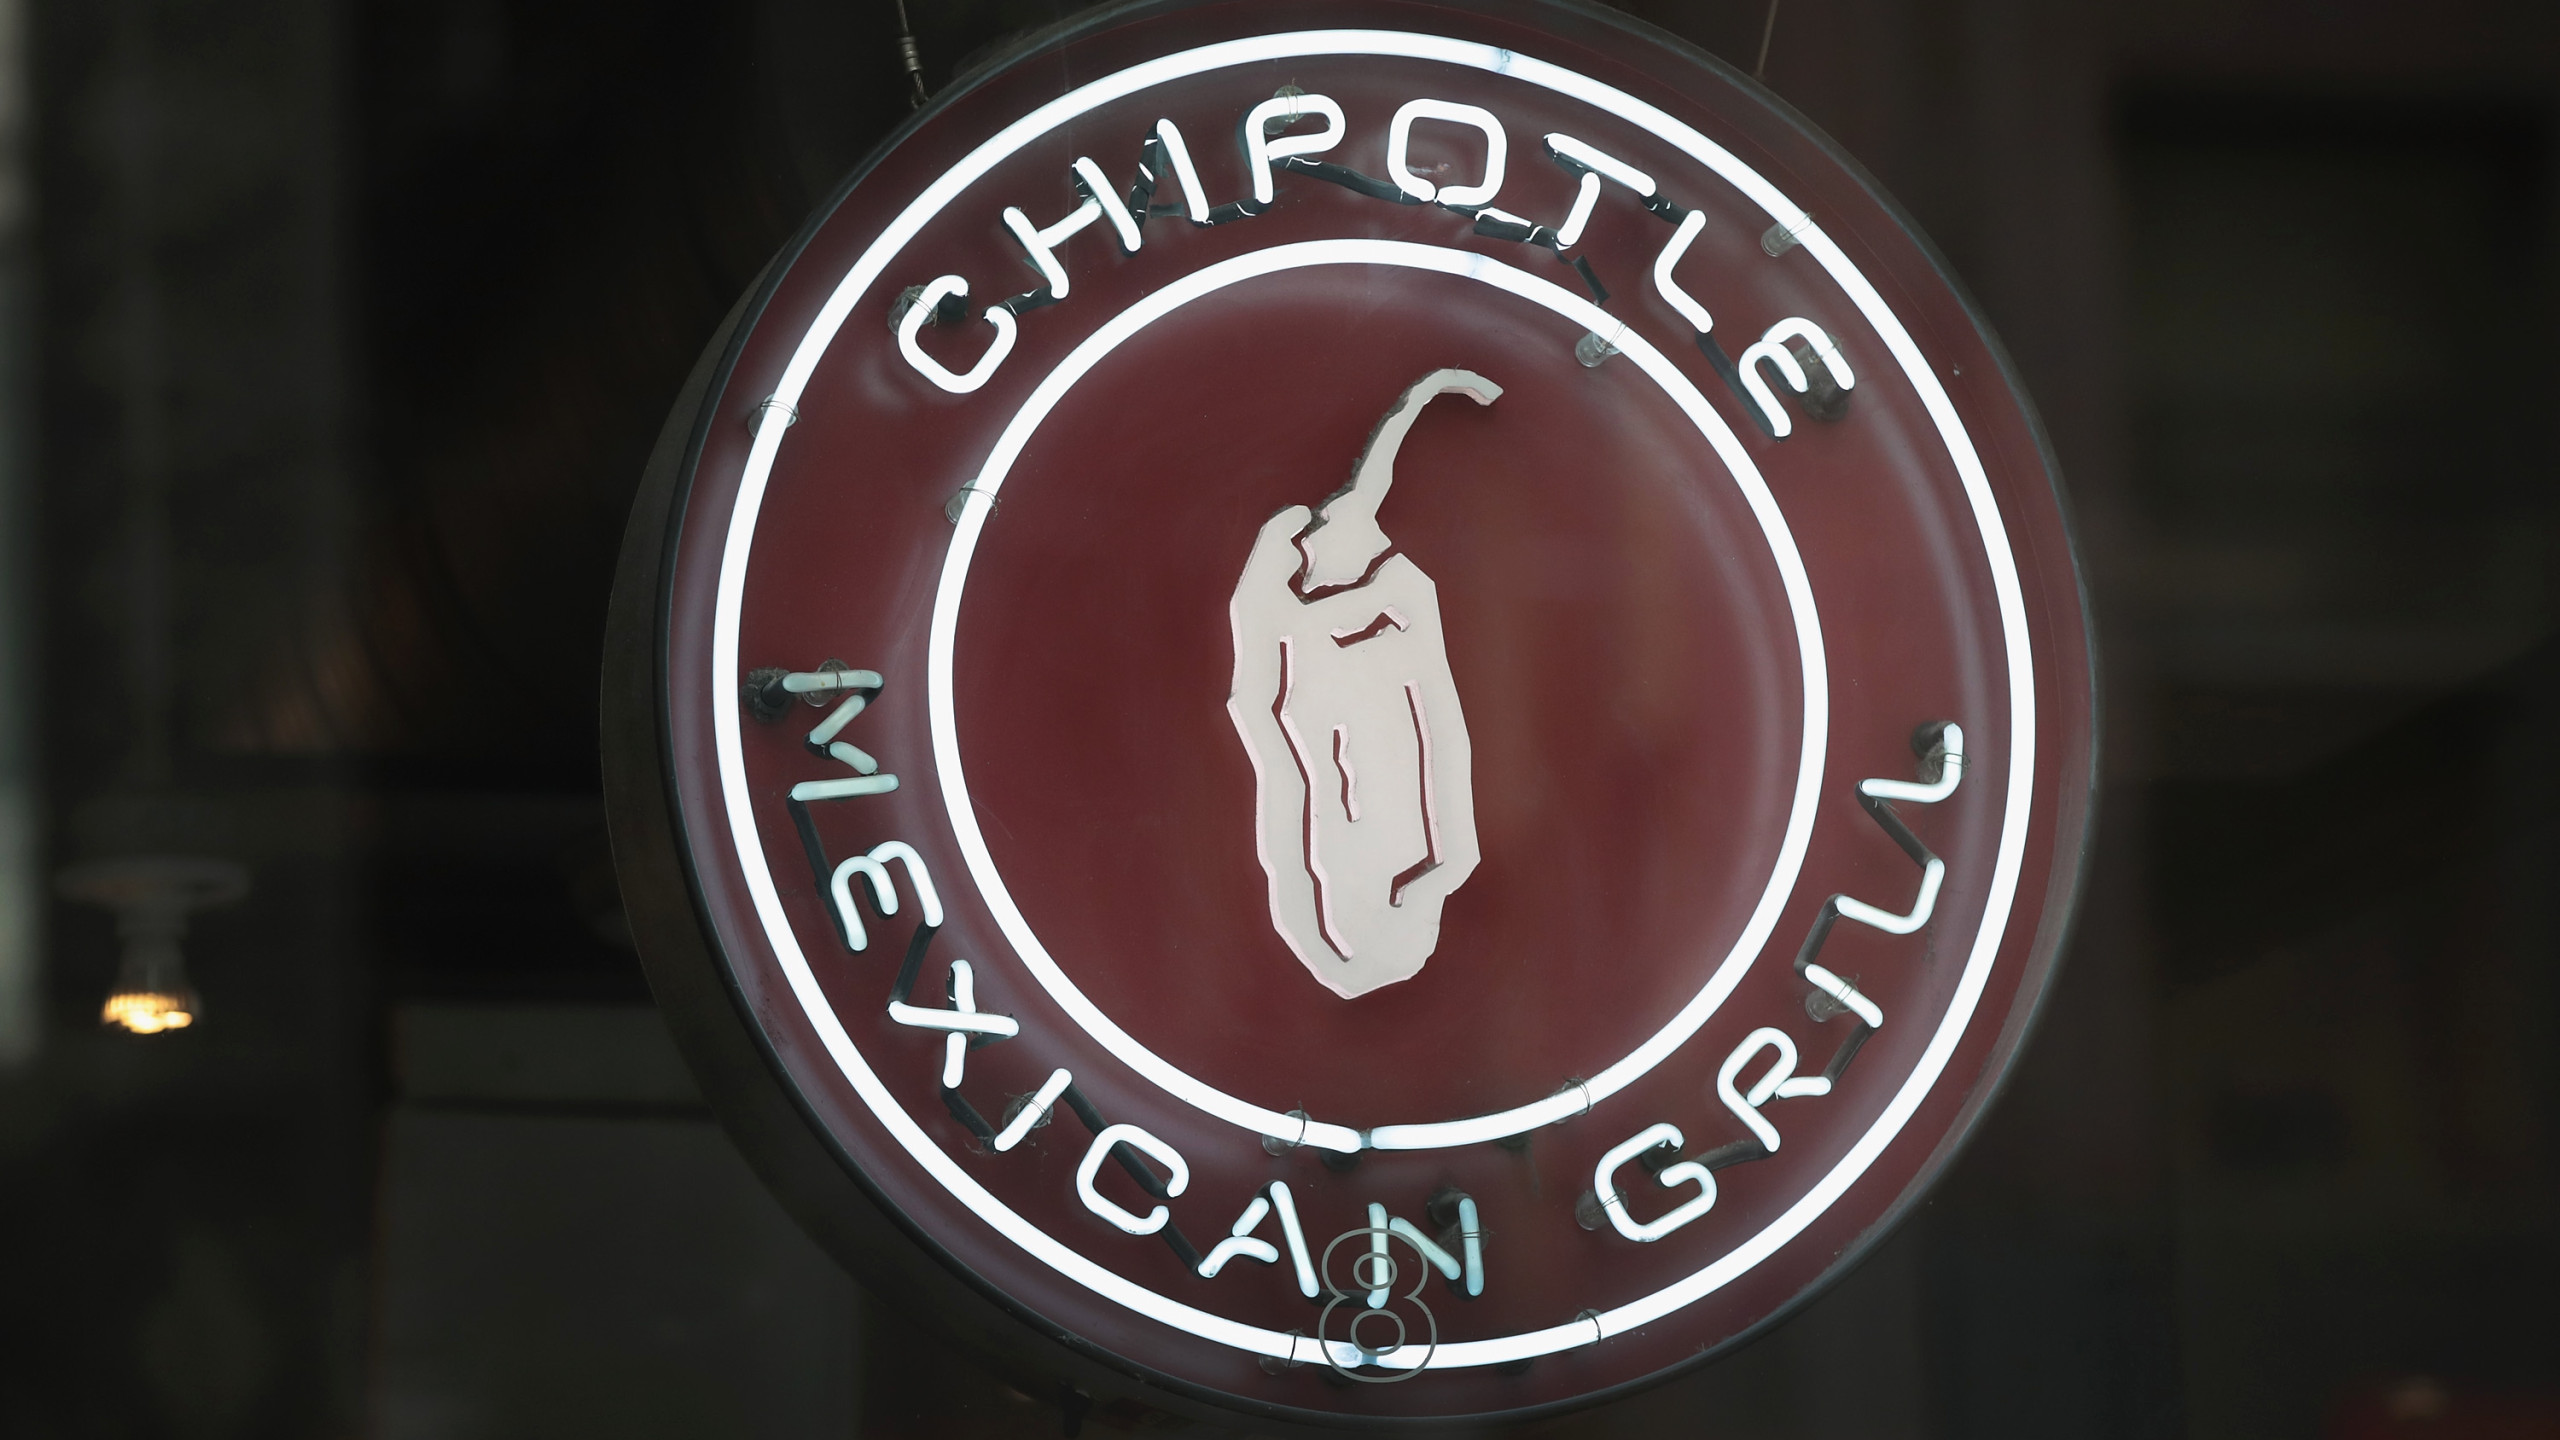 Chipotle offering BOGO deal on National Teacher Appreciation Day 2560x1440